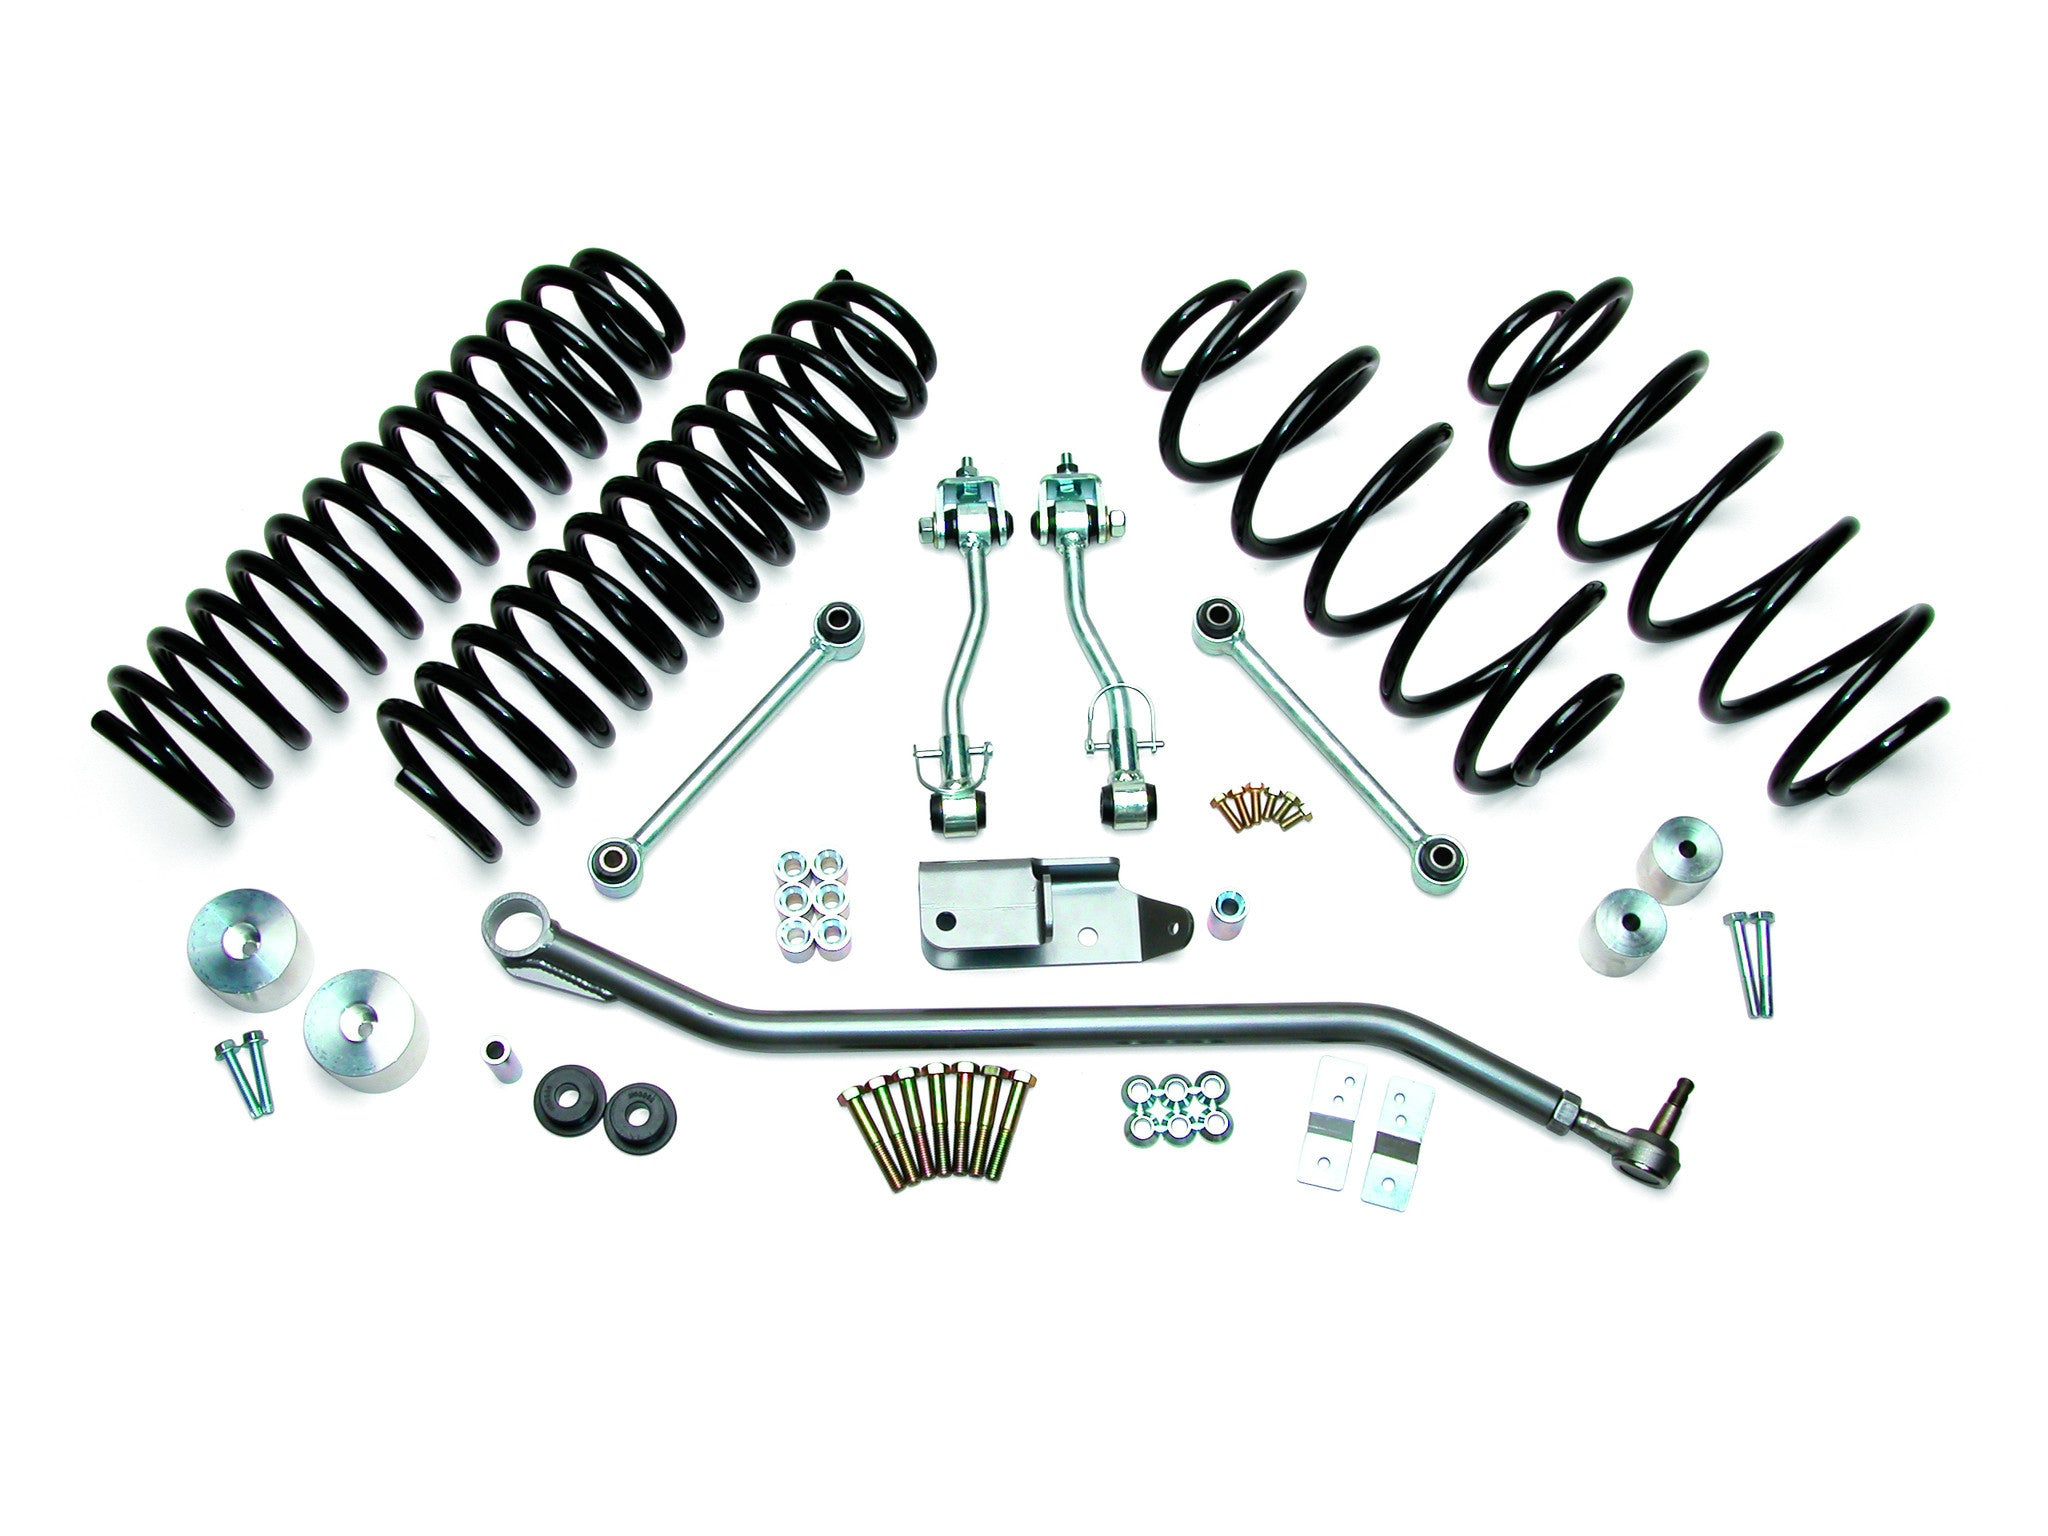 Jeep TJ Wrangler 3.0-inch Economy Suspension kit Part FTS7503